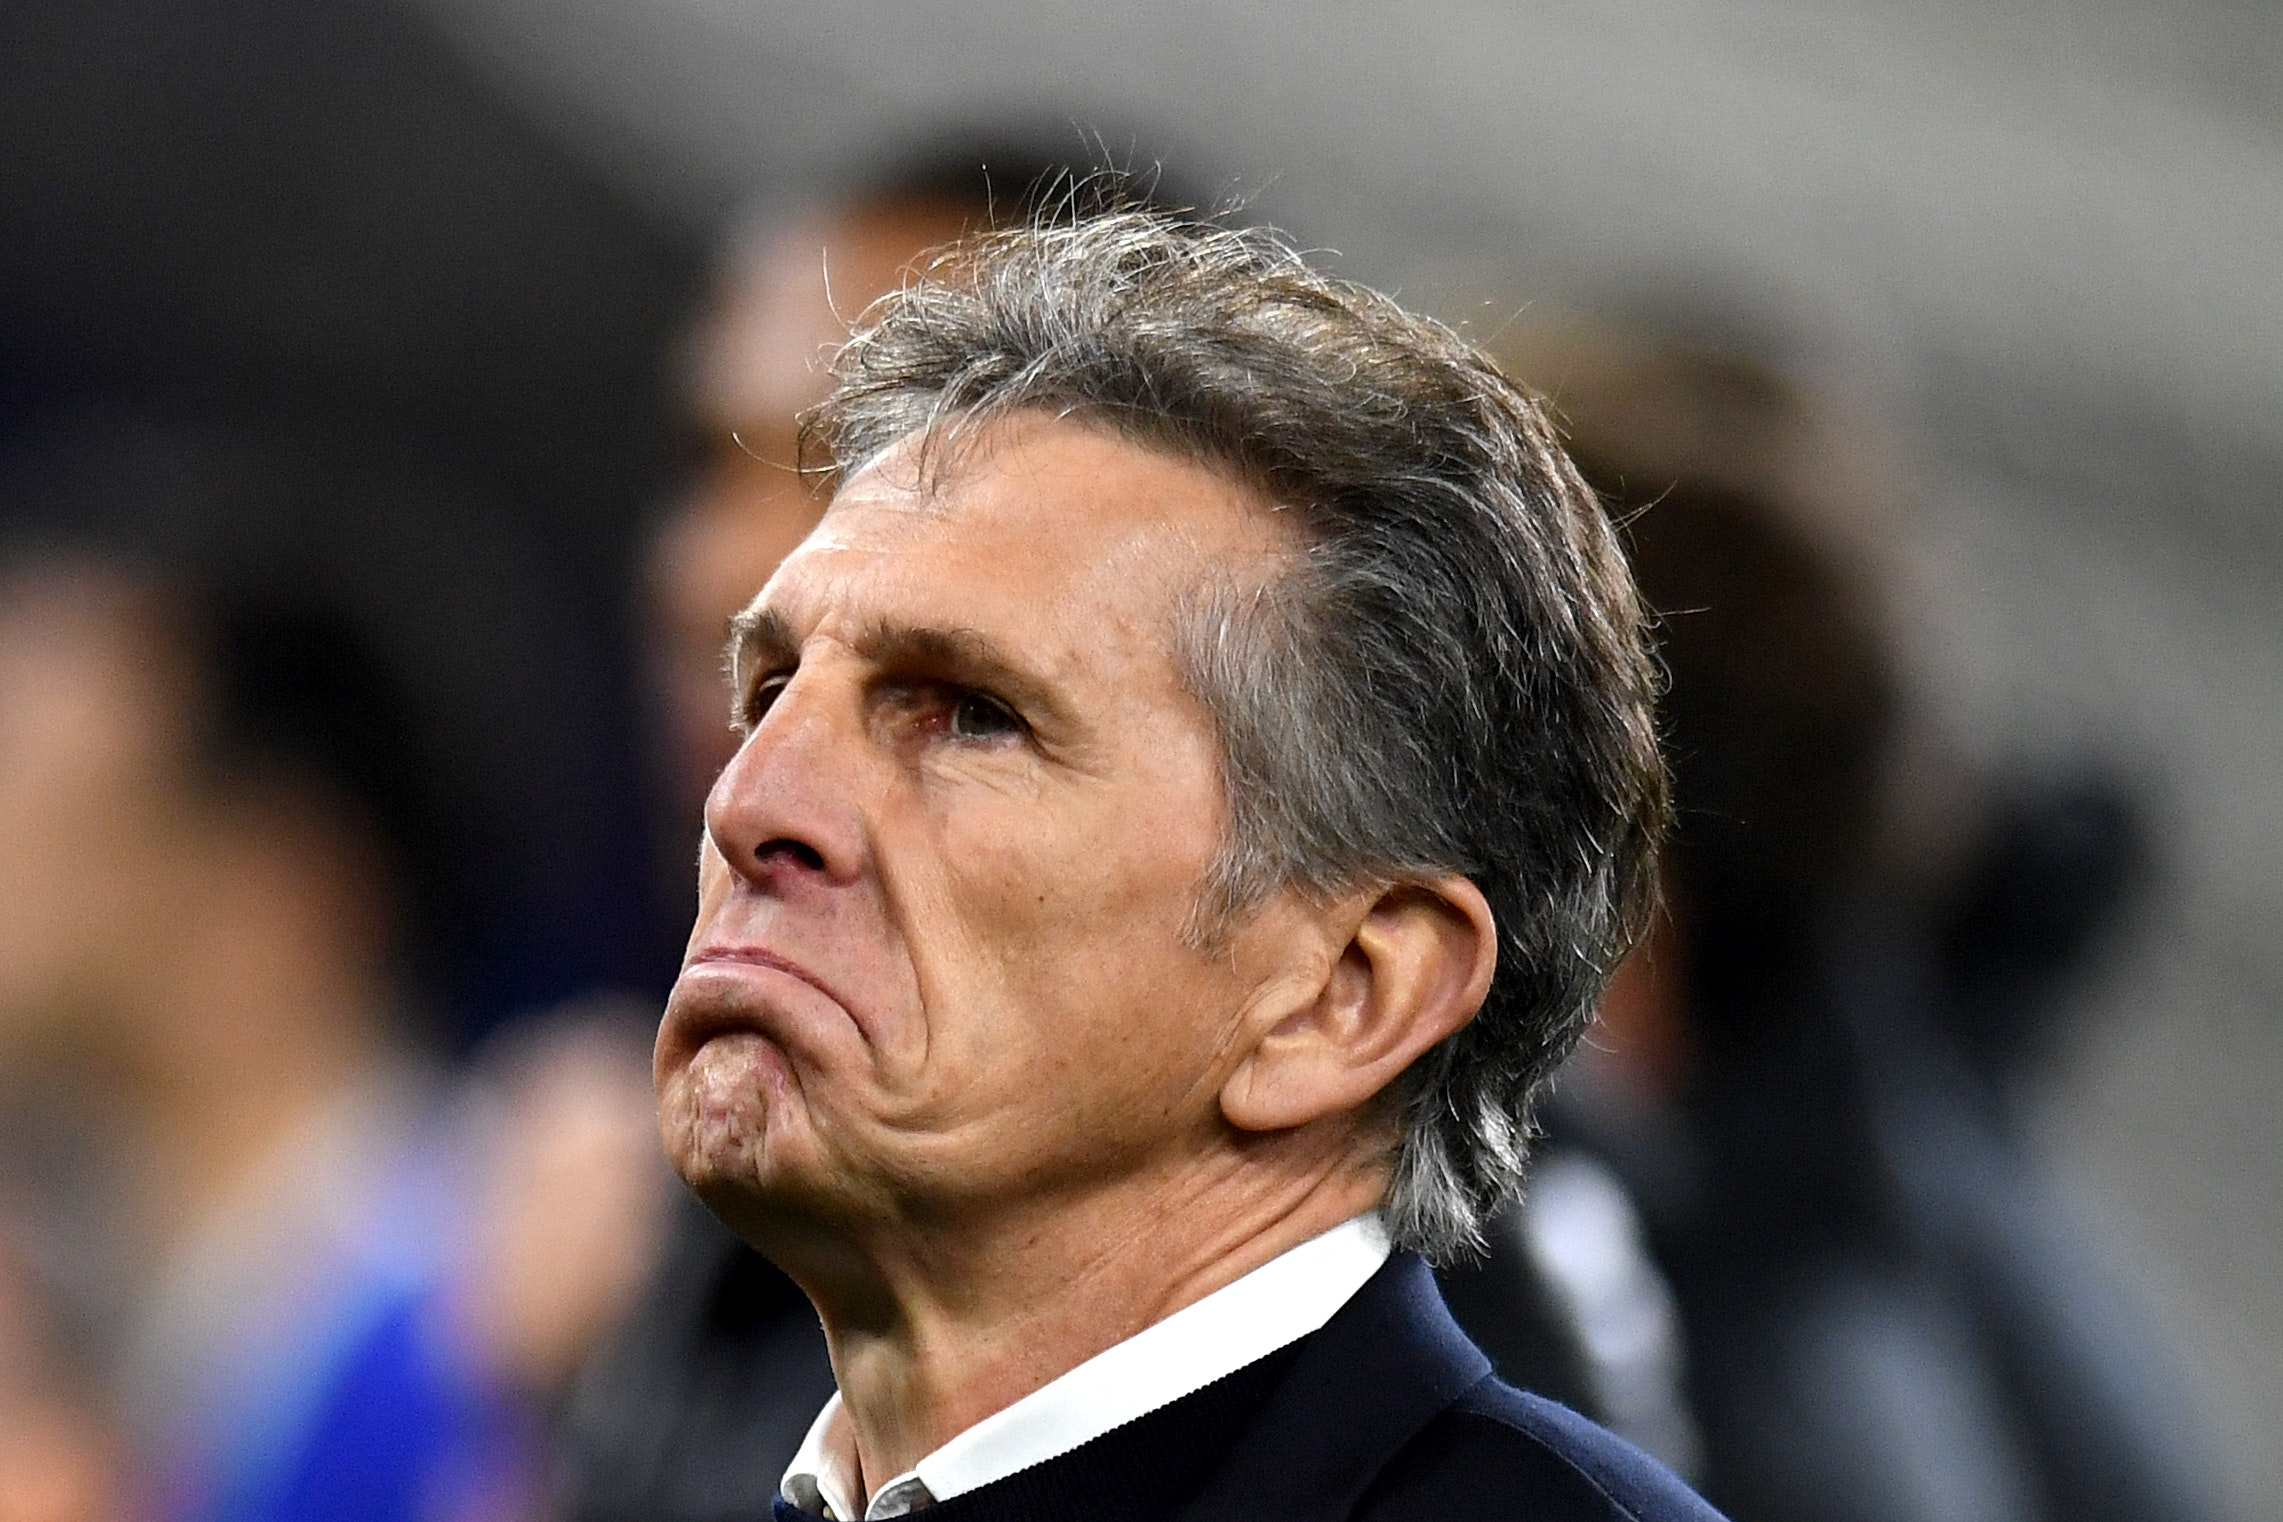 Claude Puel's position seems under constant scrutiny